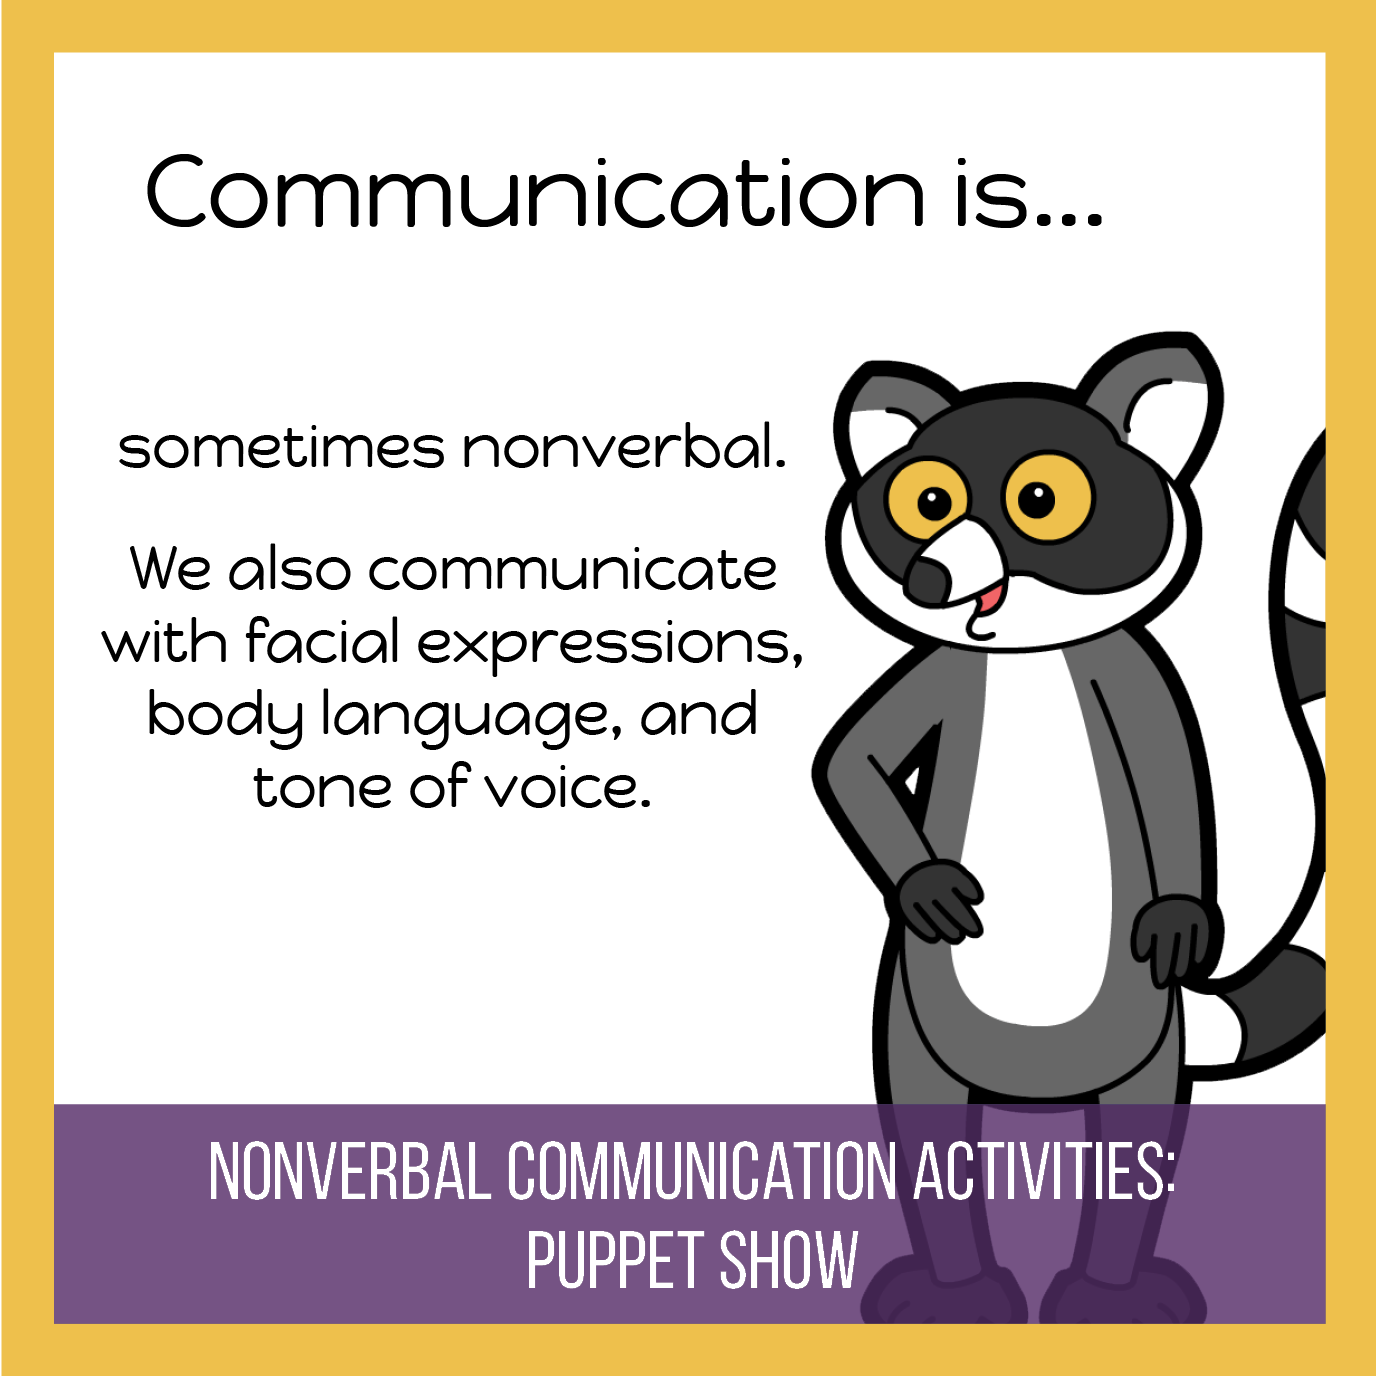 about communication